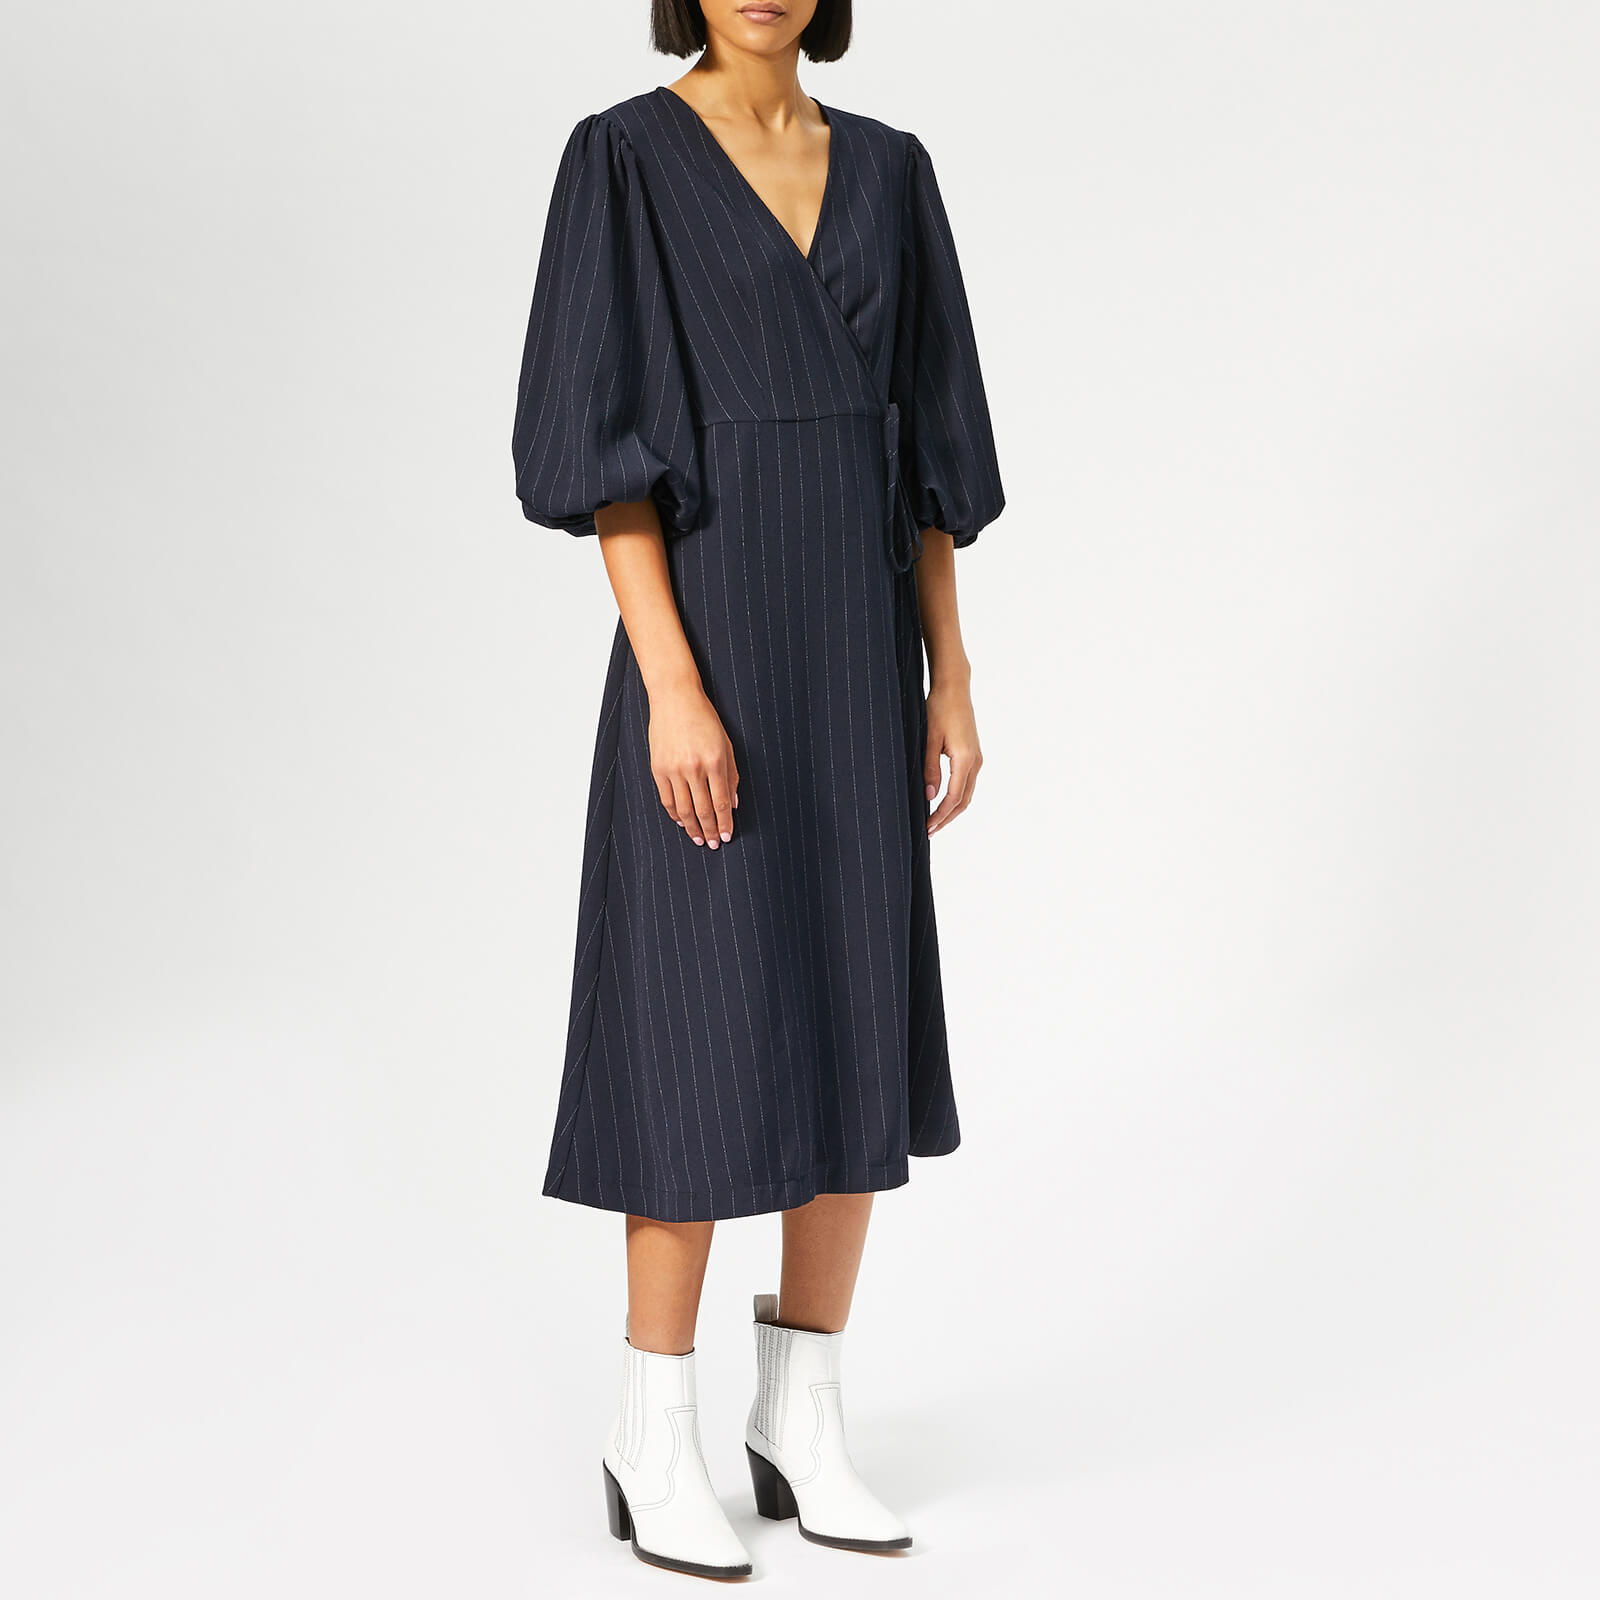 e6f5449ccb66f Ganni Women's Clark Dress - Total Eclipse - Free UK Delivery over £50